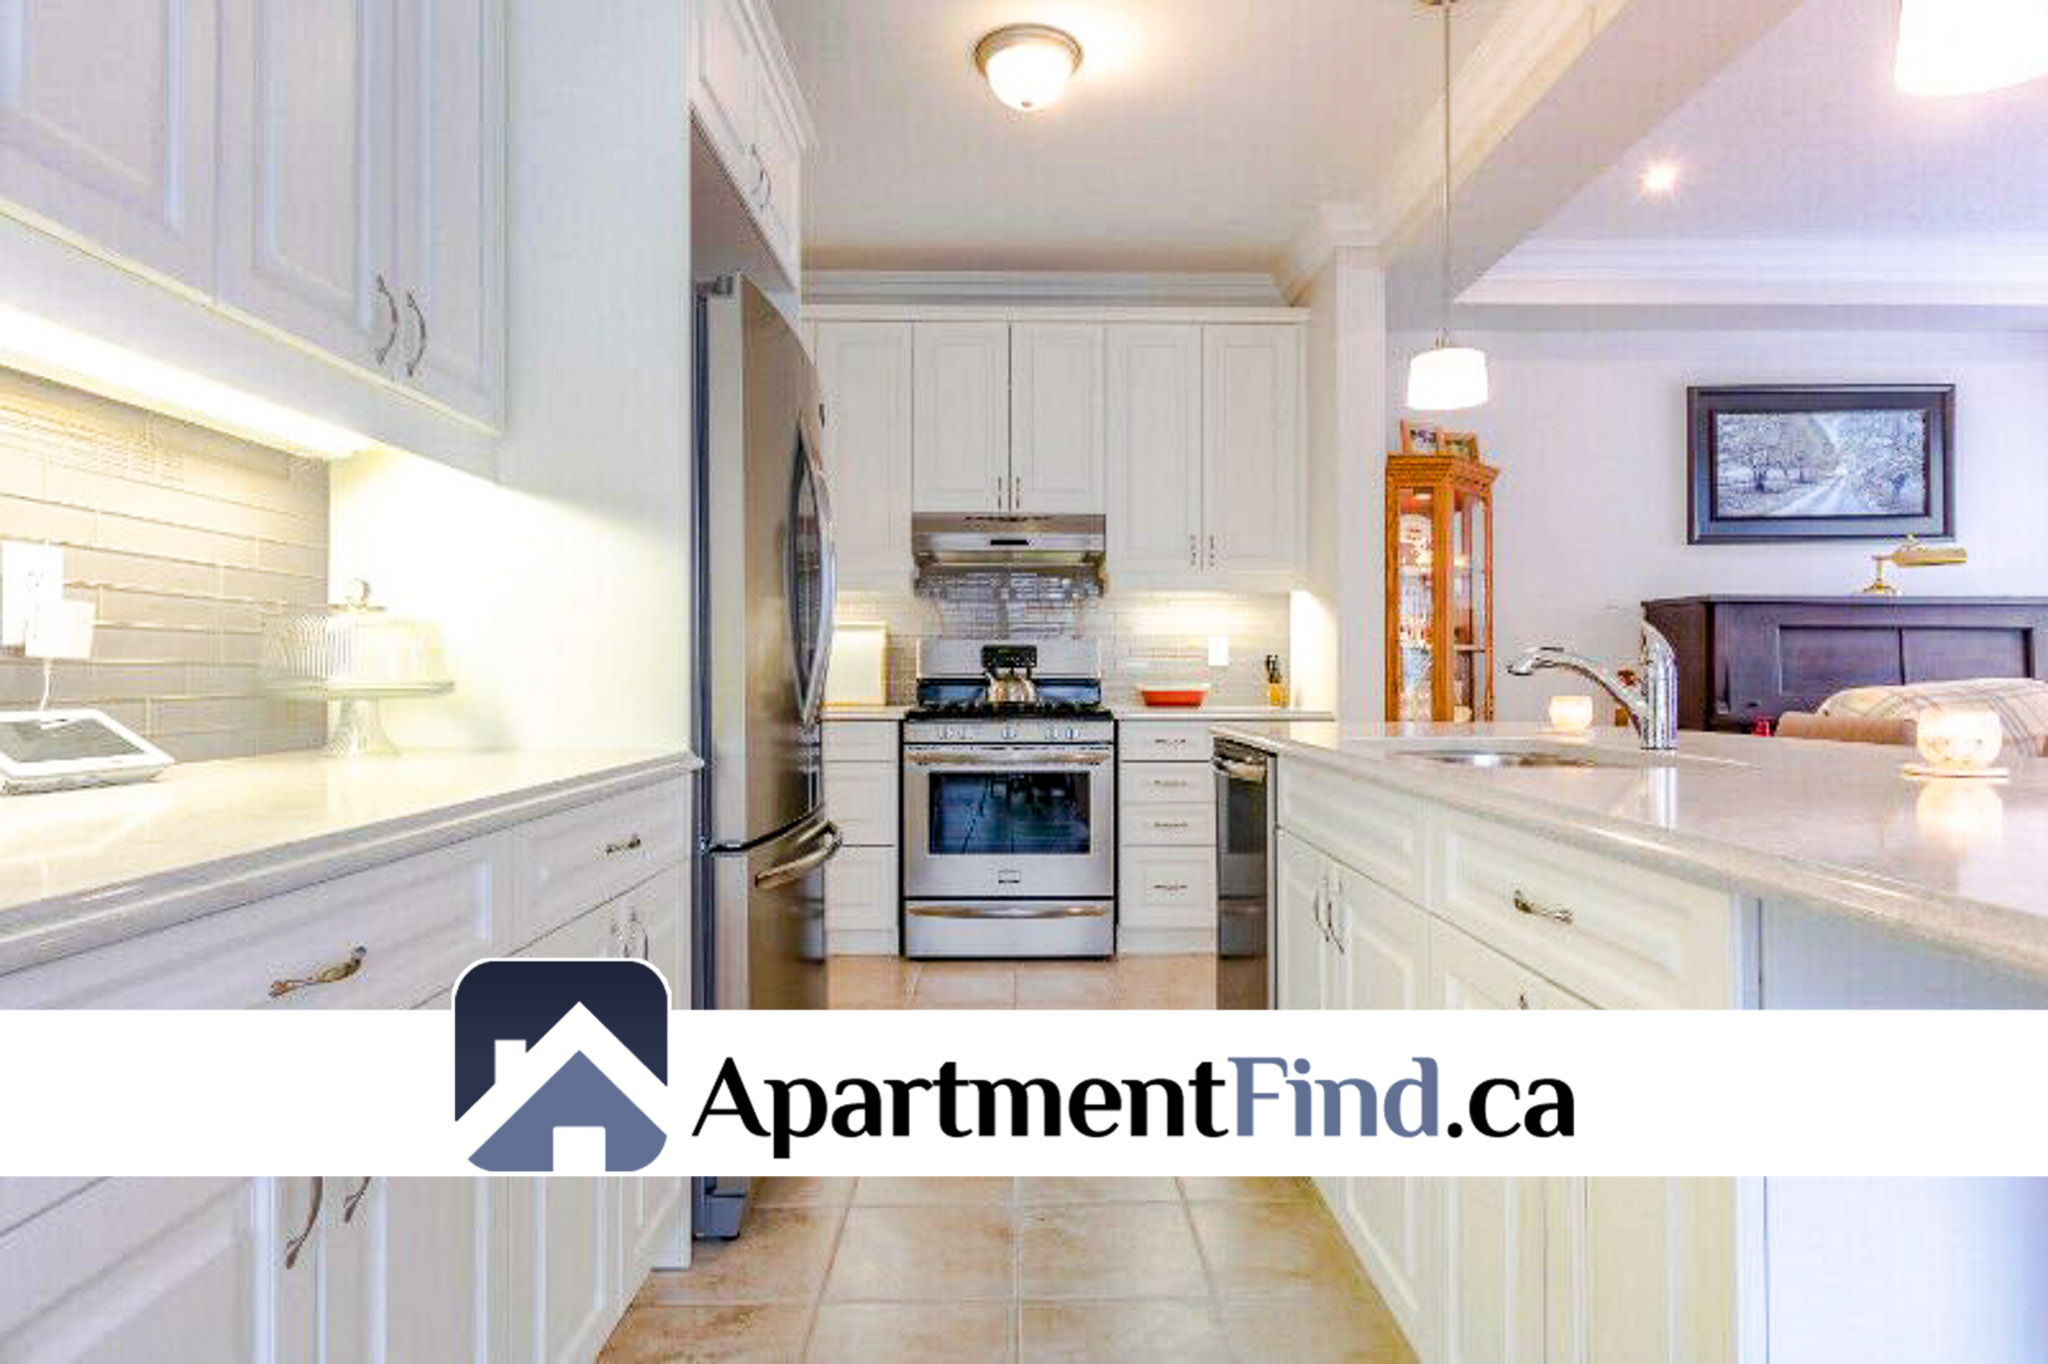 House for rent in Kanata kitchen-tile-floor-beamed-ceiling-stainless-steel-1239618